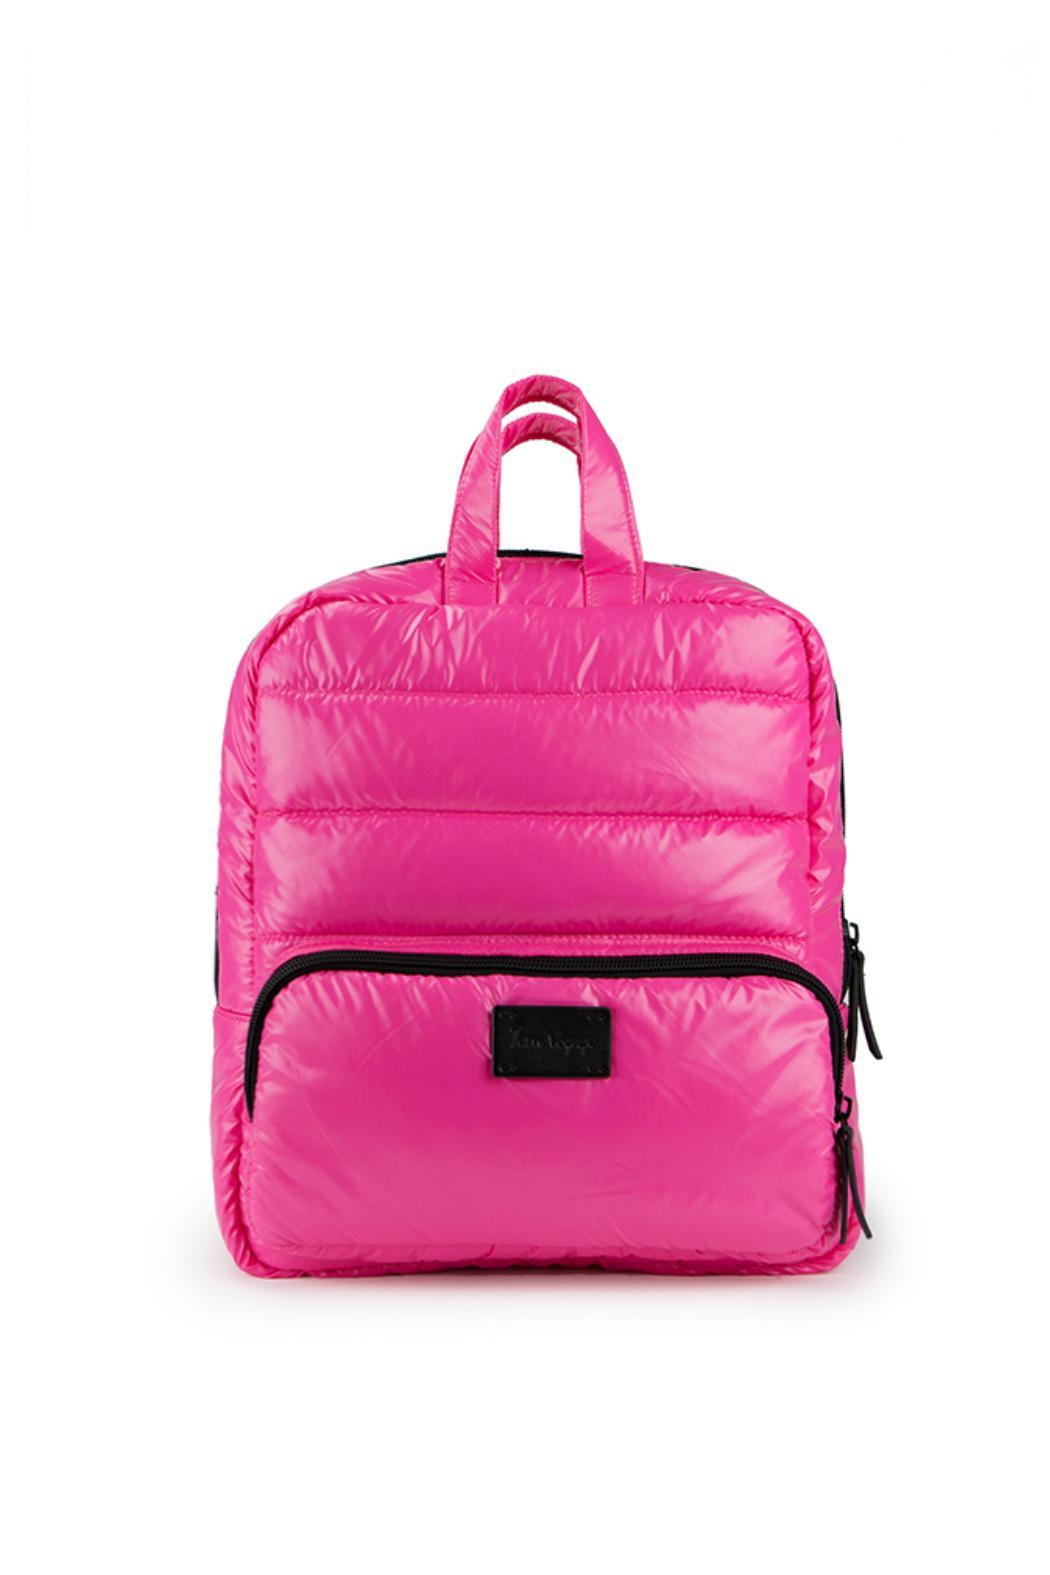 7AM Enfant Mini Nylon Backpack from New York by Let s Bag It ... bad7d44df